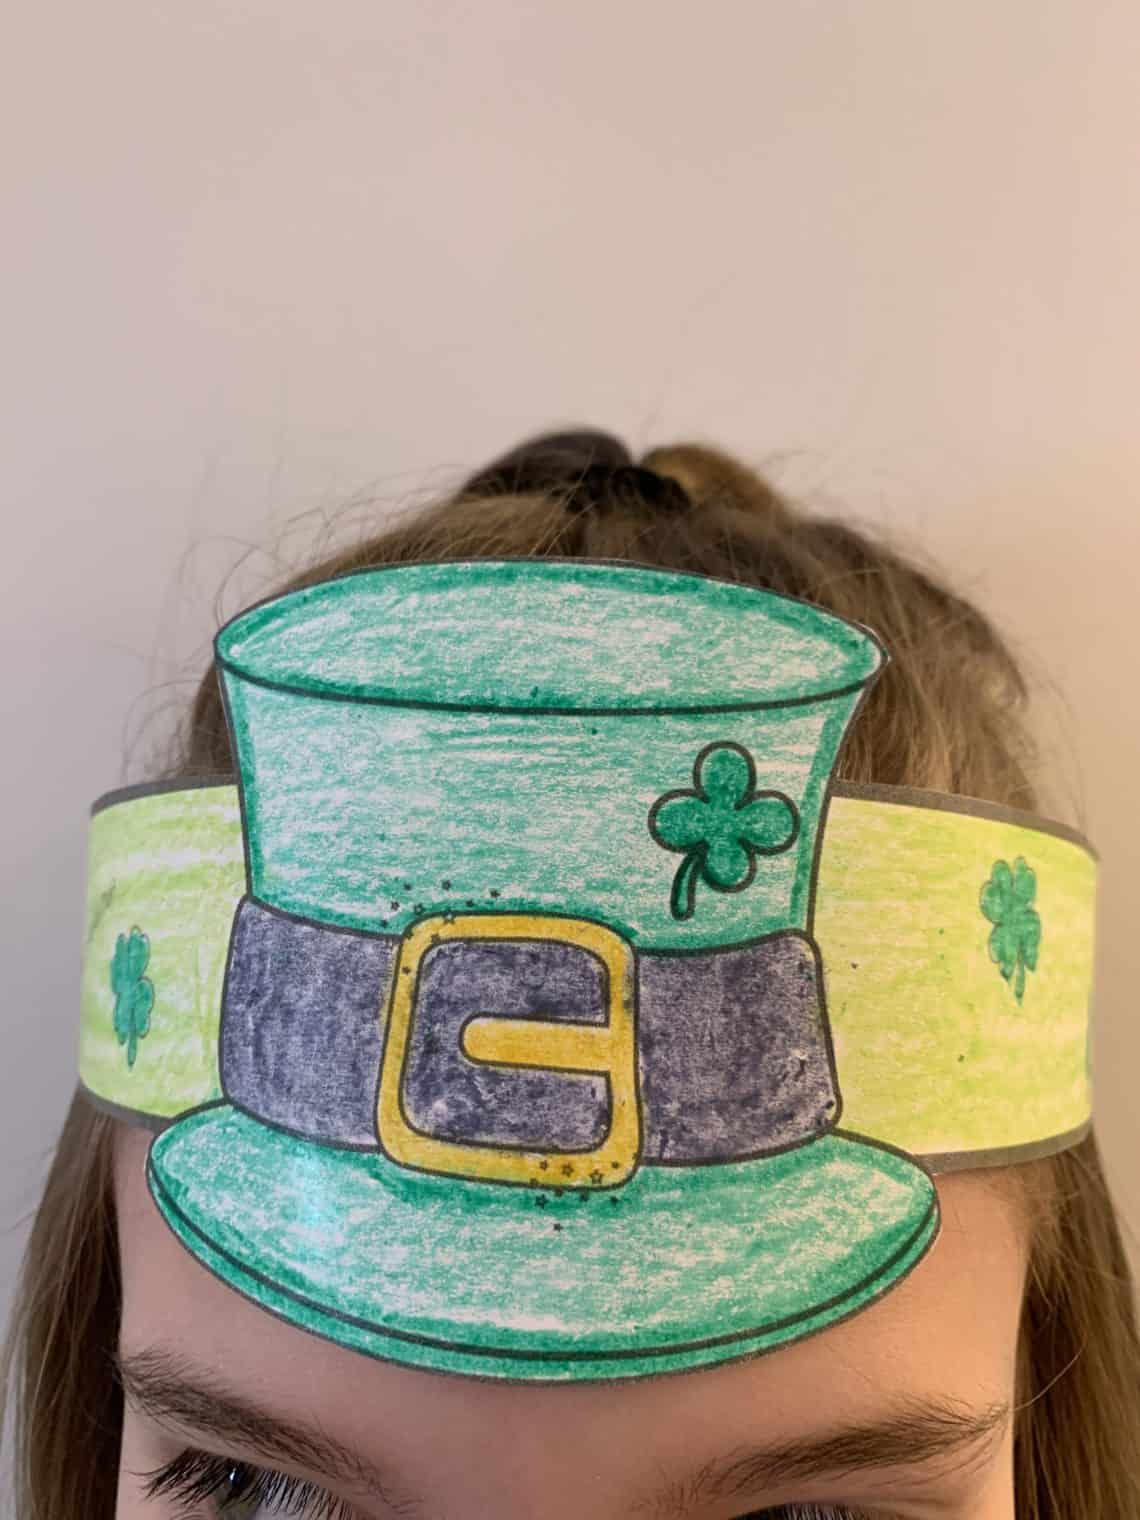 Fun and easy St. Patrick's Day Leprechaun hat crafts for kids. Boys and girls will love coloring this free template image. A perfect St. Paddys picture for children and families to celebrate the green Irish holiday. #saintpatricksday #stpatricksdaycrafts #papercraftideas #leprechaun #kidscrafts